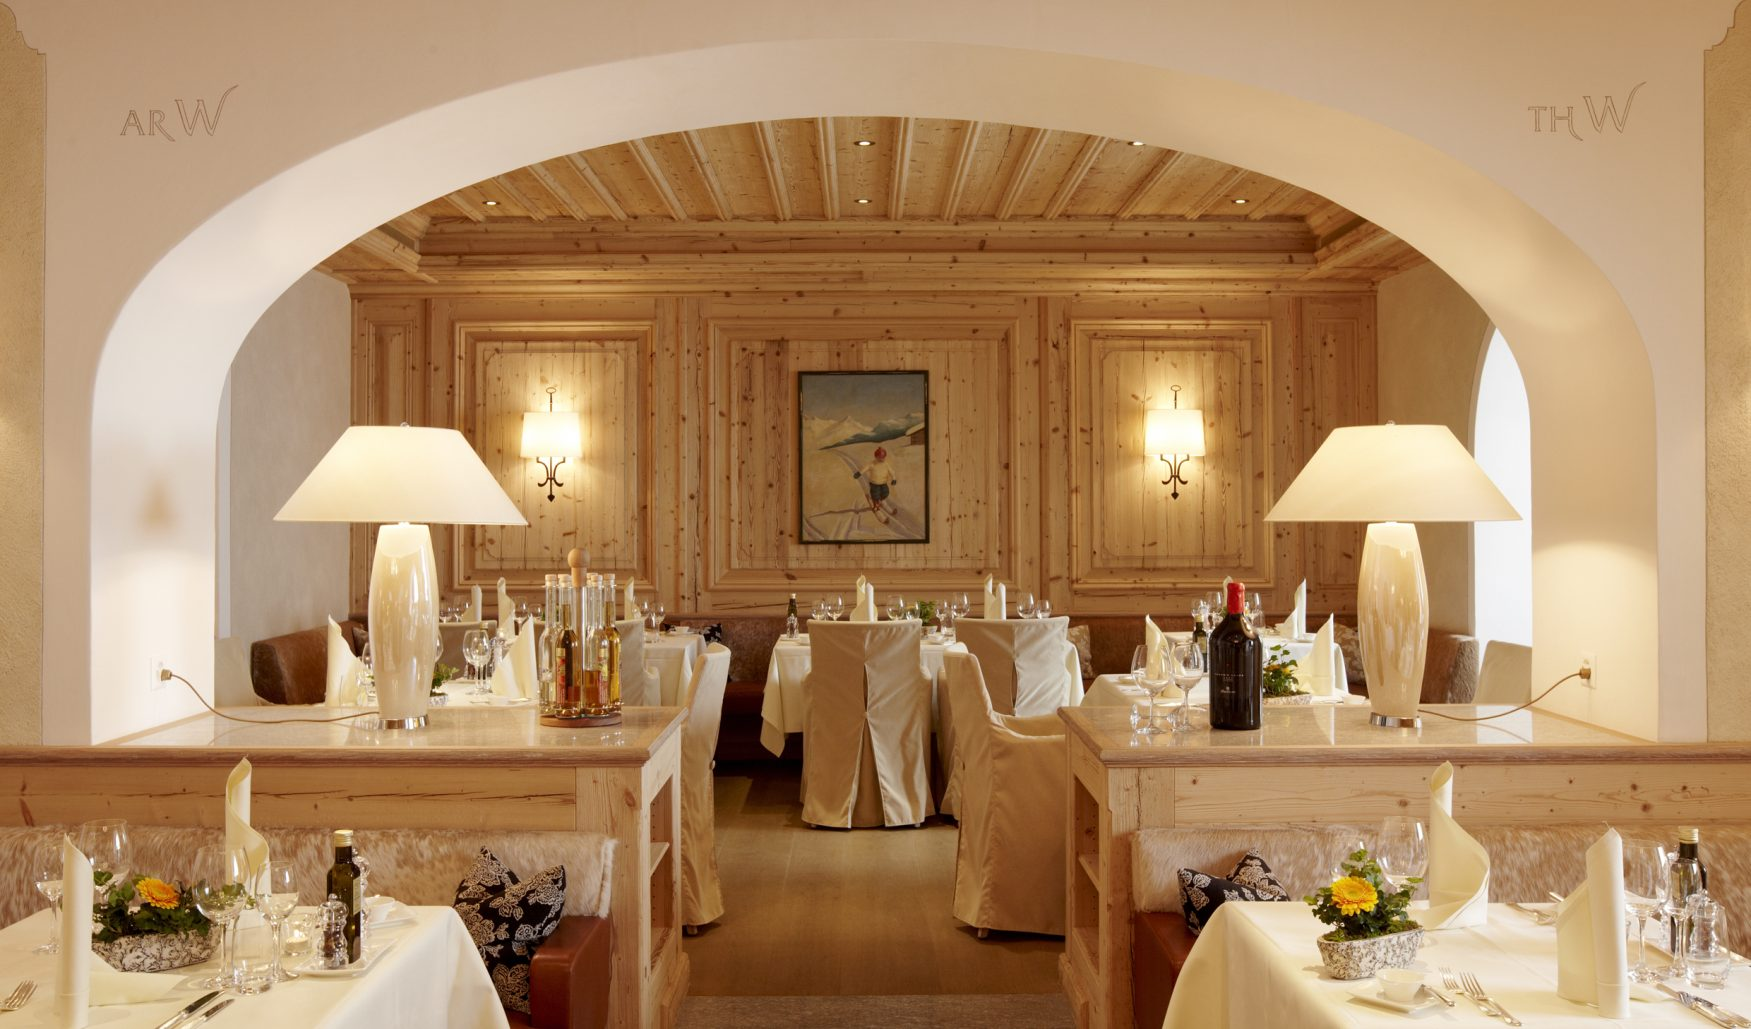 Blick in das Gourmetrestaurant Stueva im Hotel Walther in Pontresina, Foto: hotelwalther.ch